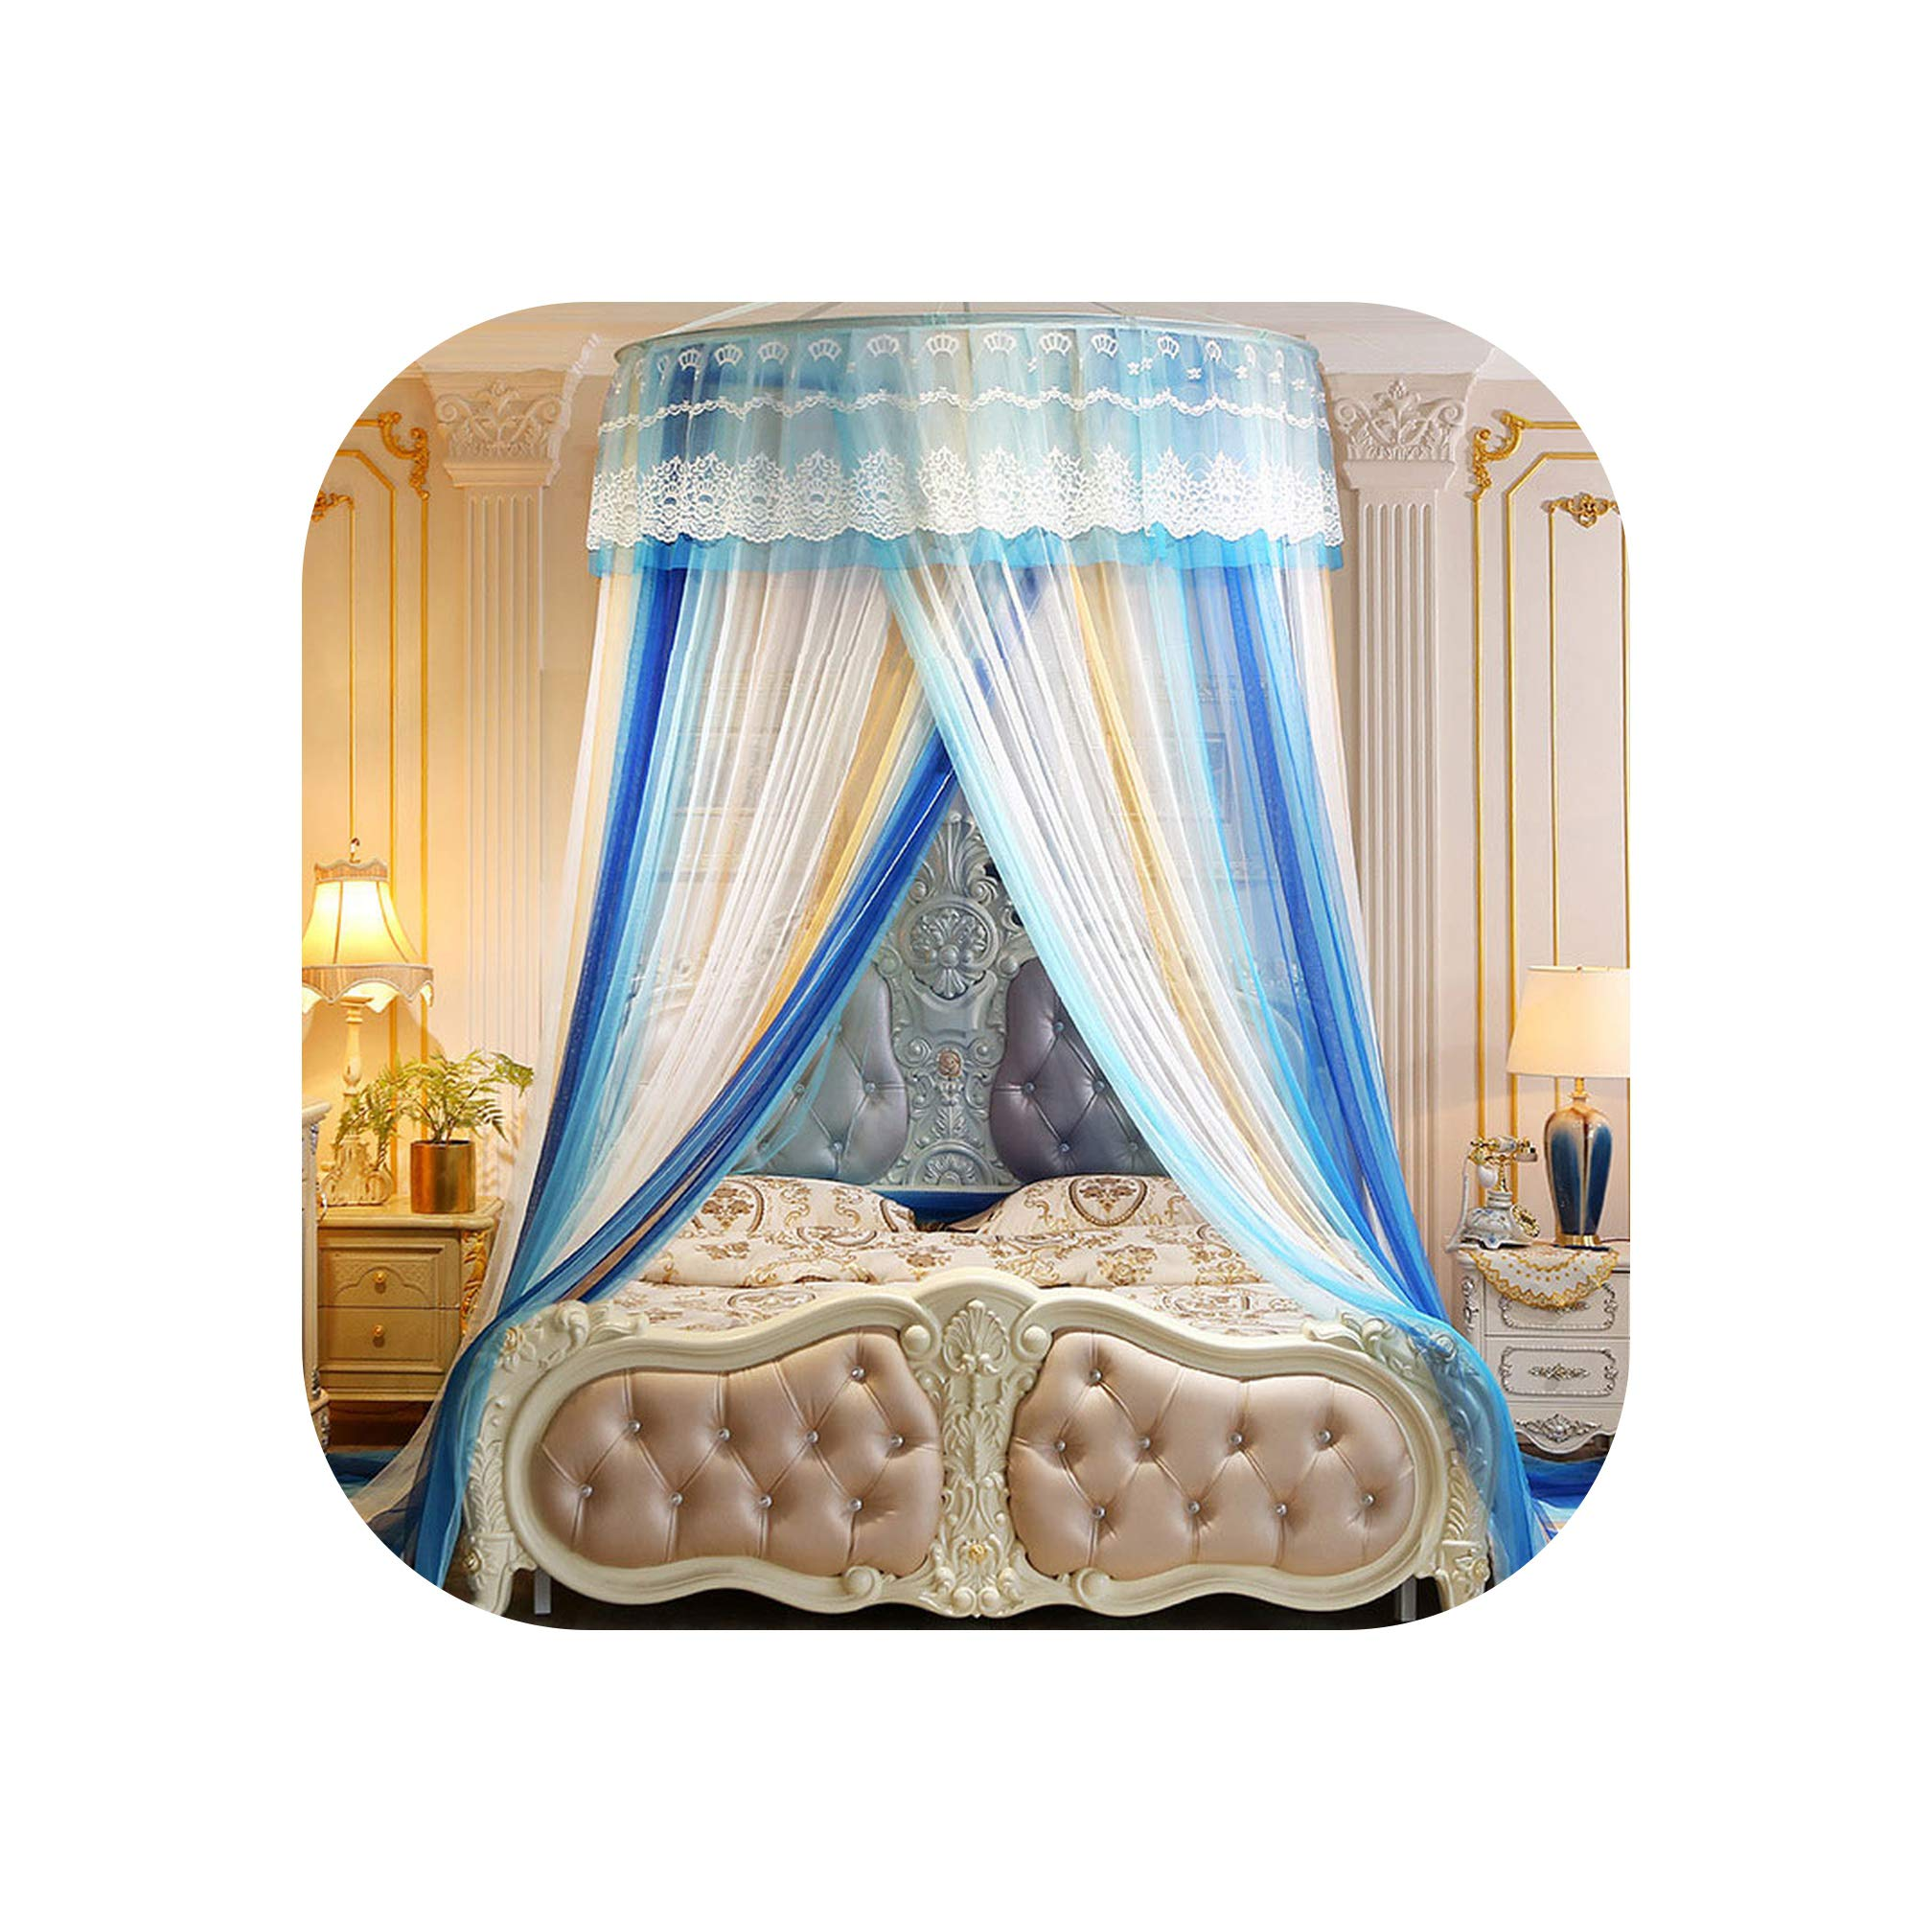 Mosquito net for Double Bed Hanging Dome Kids Baby Bedding Bed Home Decor Repellent Tent Insect Reject Canopy Bed,Blue